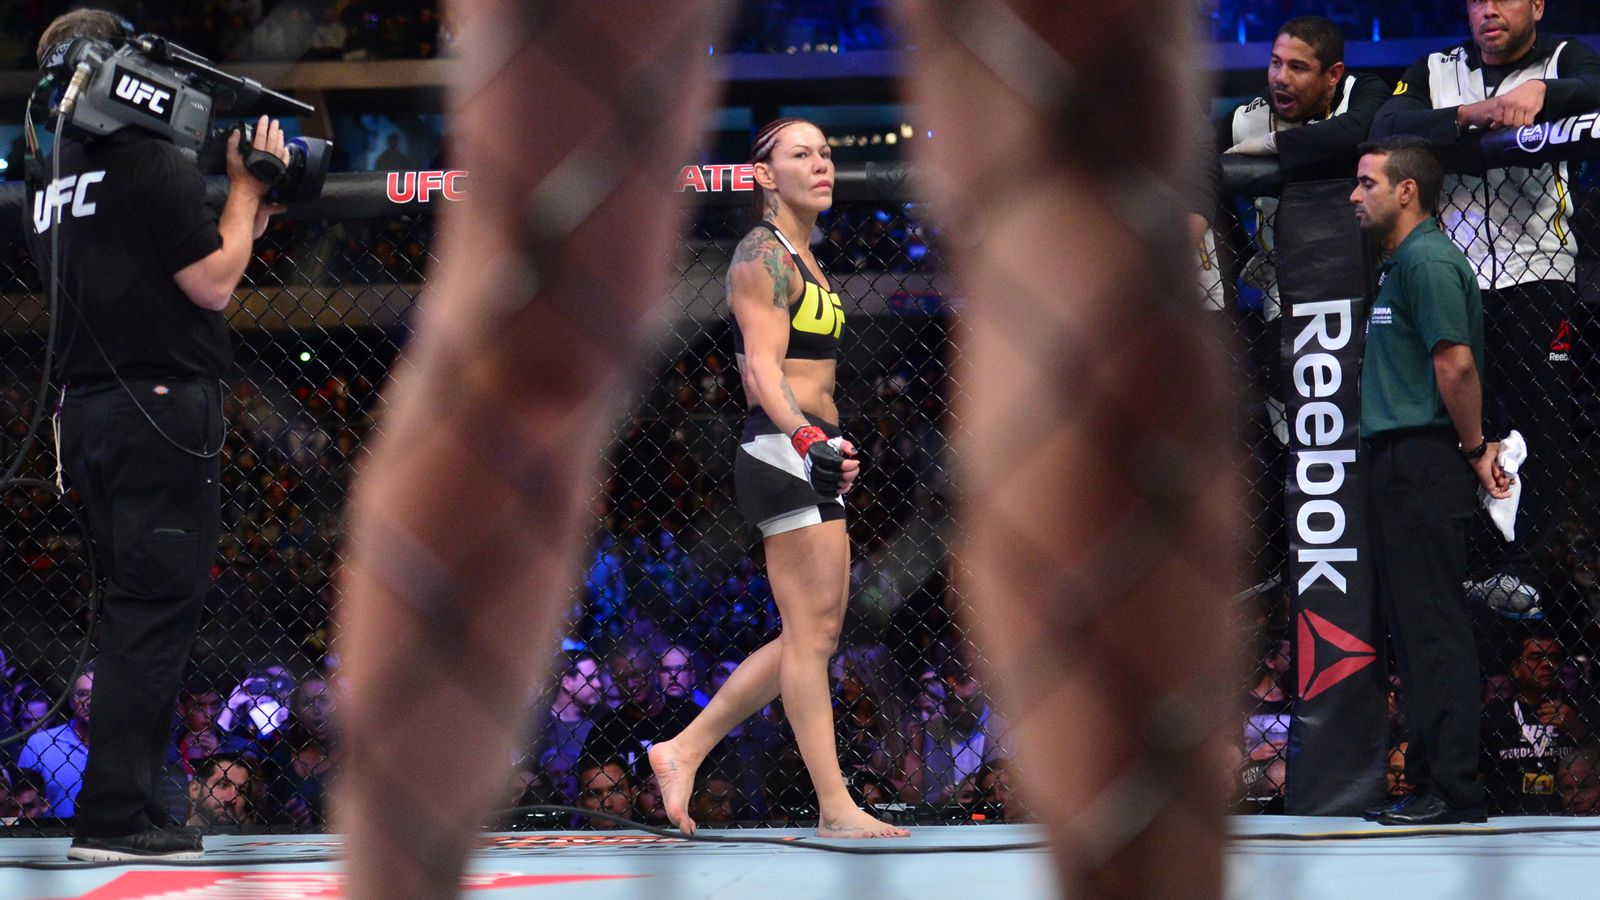 Miesha Tate still open to Cris Cyborg fight at 140 pounds - MMAmania.com